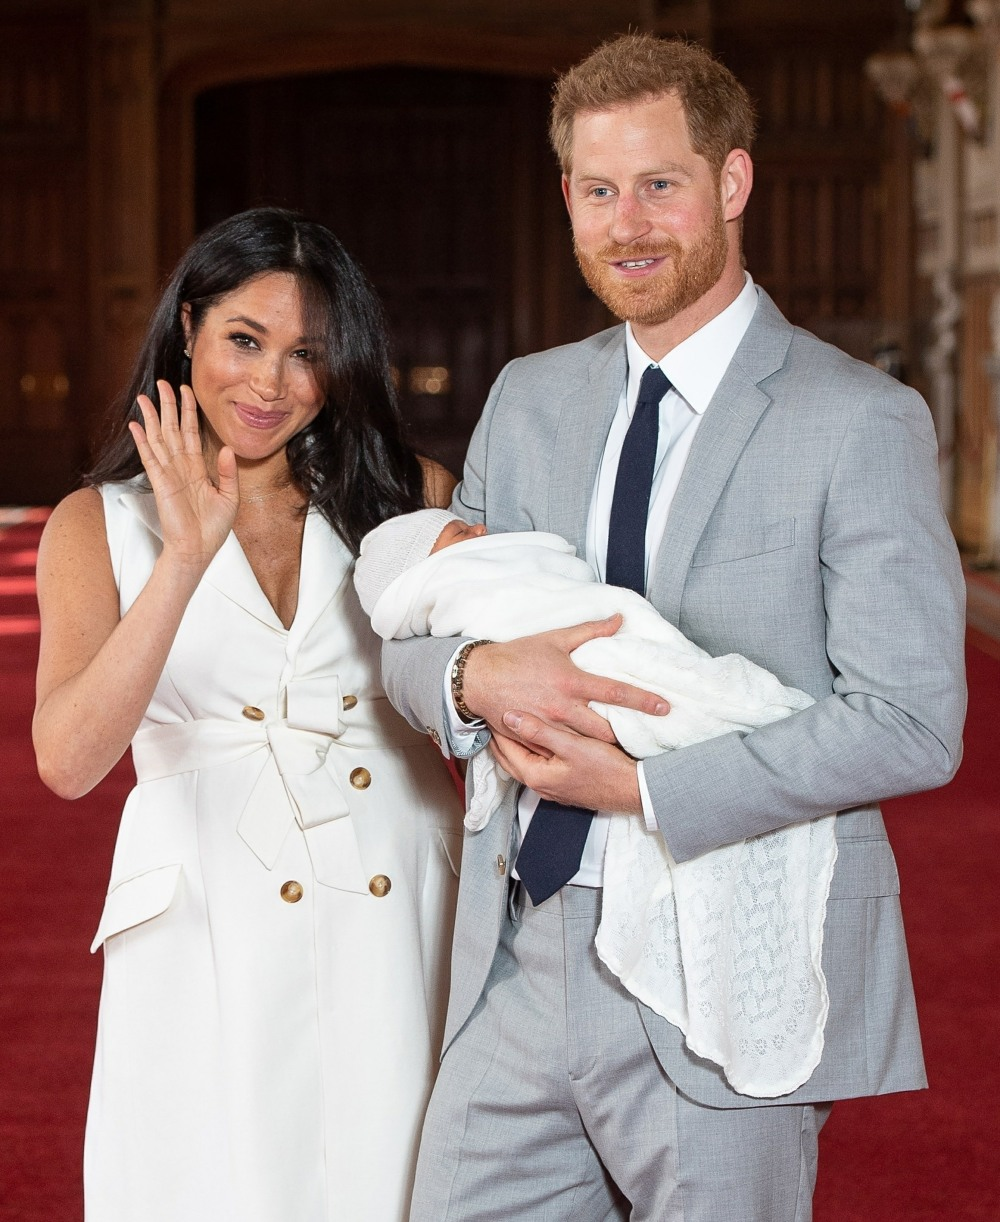 Prince Harry & Meghan will 'retain financial responsibility' for Frogmore Cottage